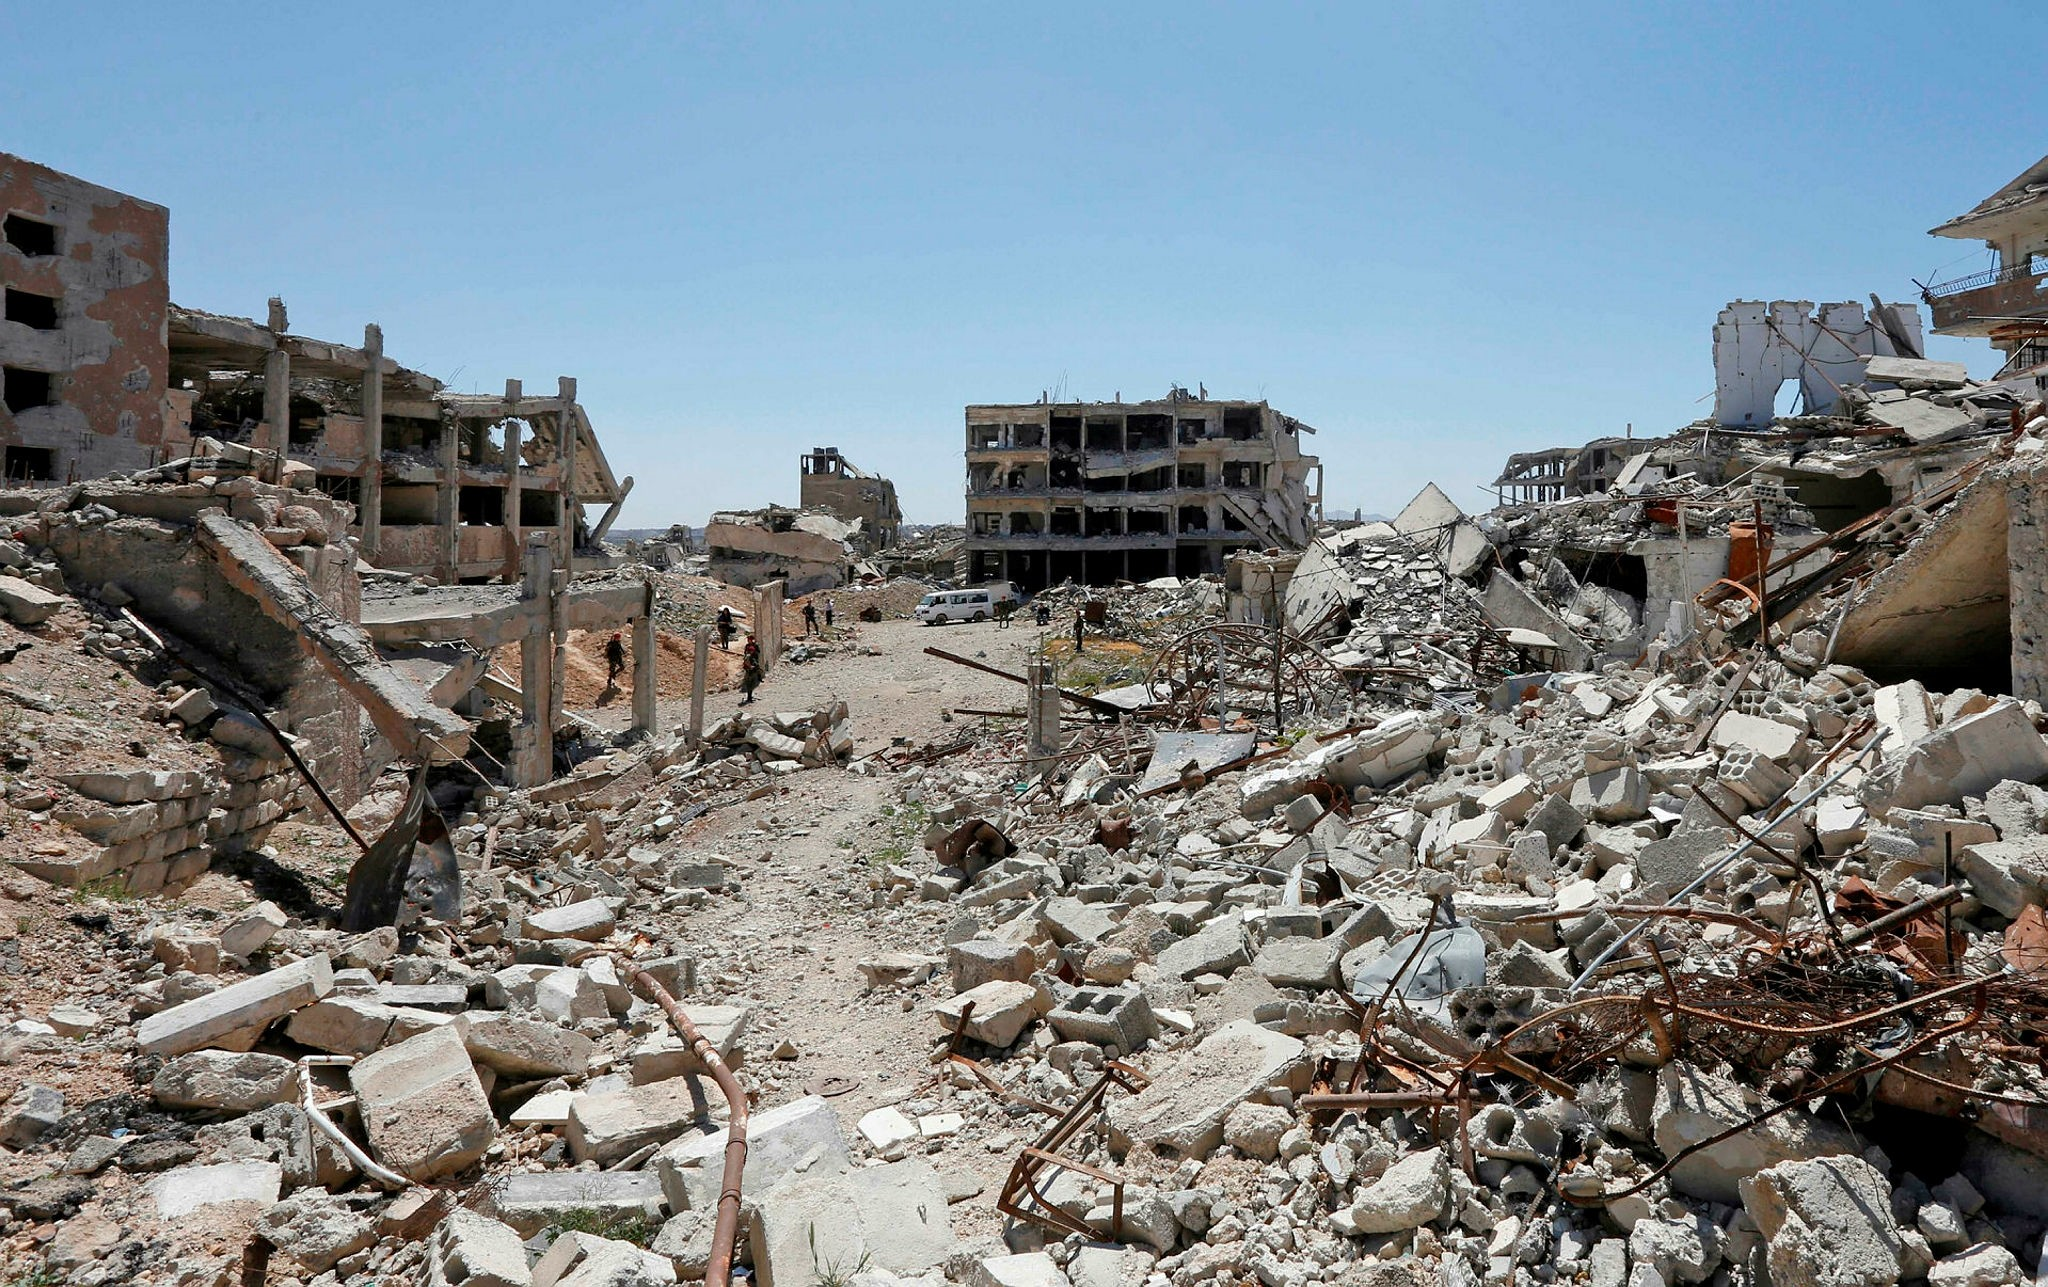 A general view shows the destruction in Jobar in Eastern Ghouta, on the outskirts of the Syrian capital Damascus on April 2, 2018. (AFP Photo)